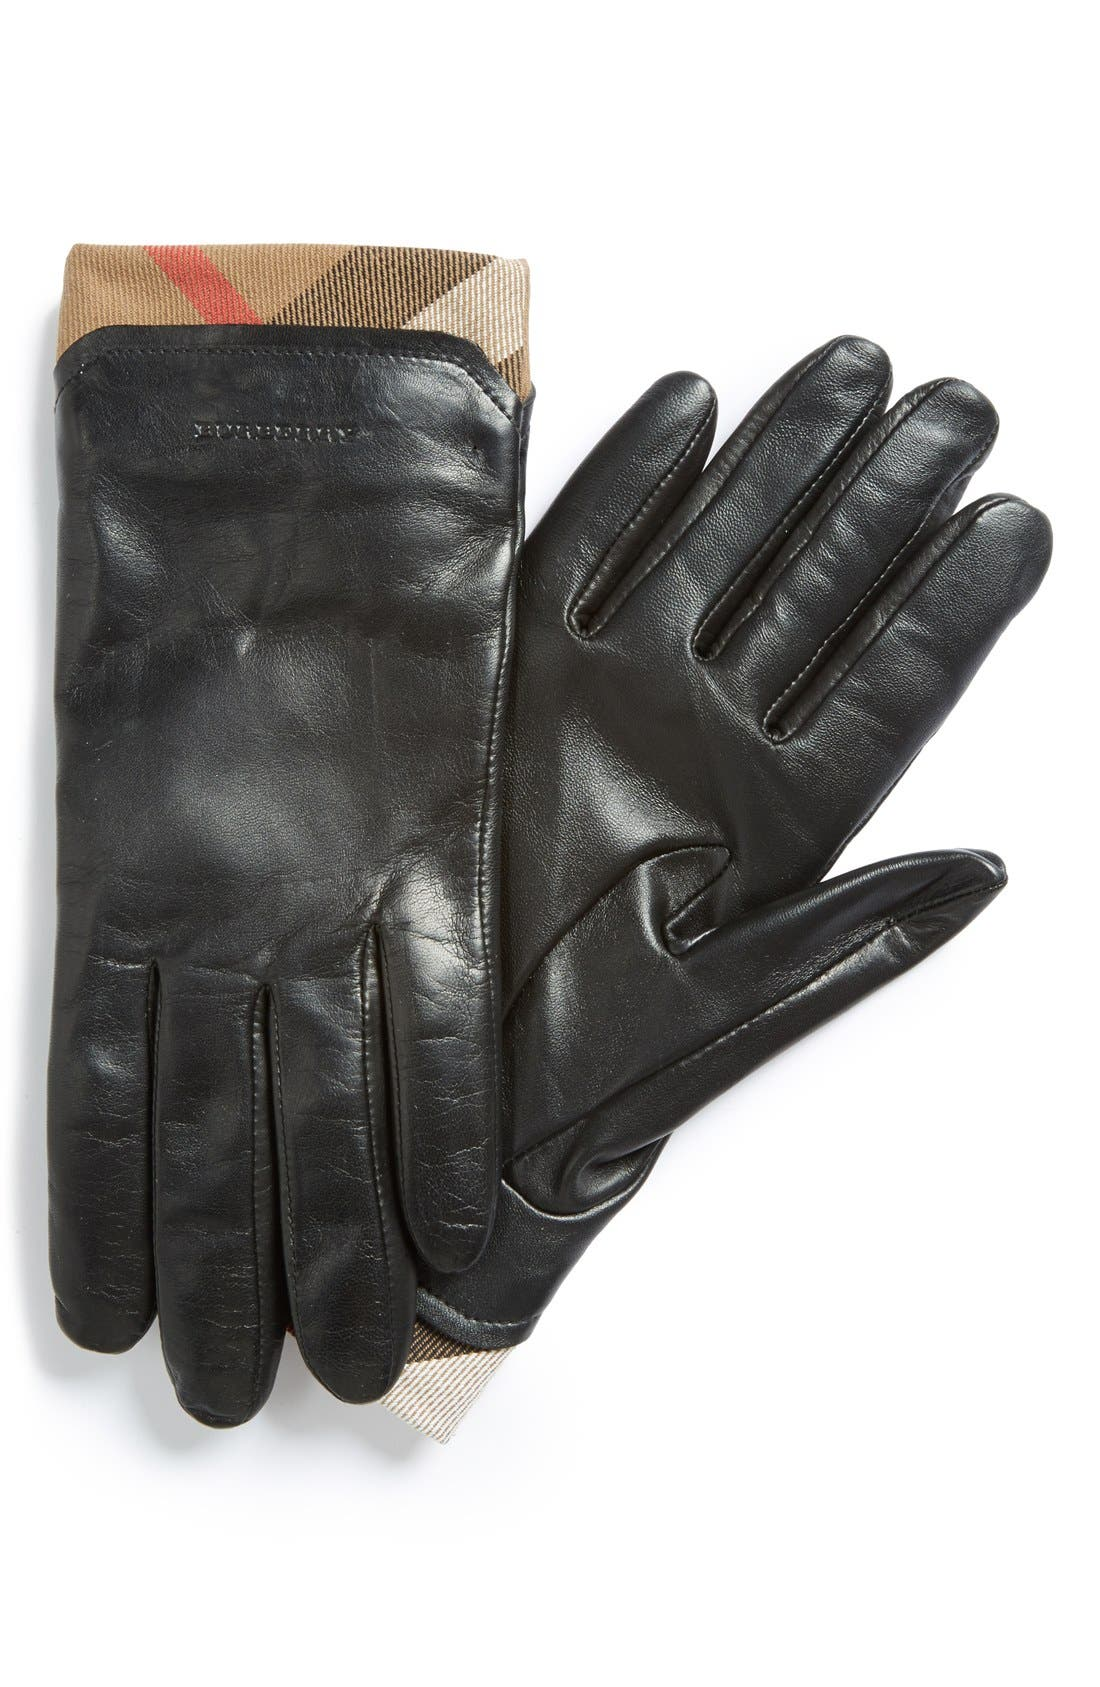 BURBERRY 'Jenny - House Check' Touch Tech Leather Gloves, Main, color, 001